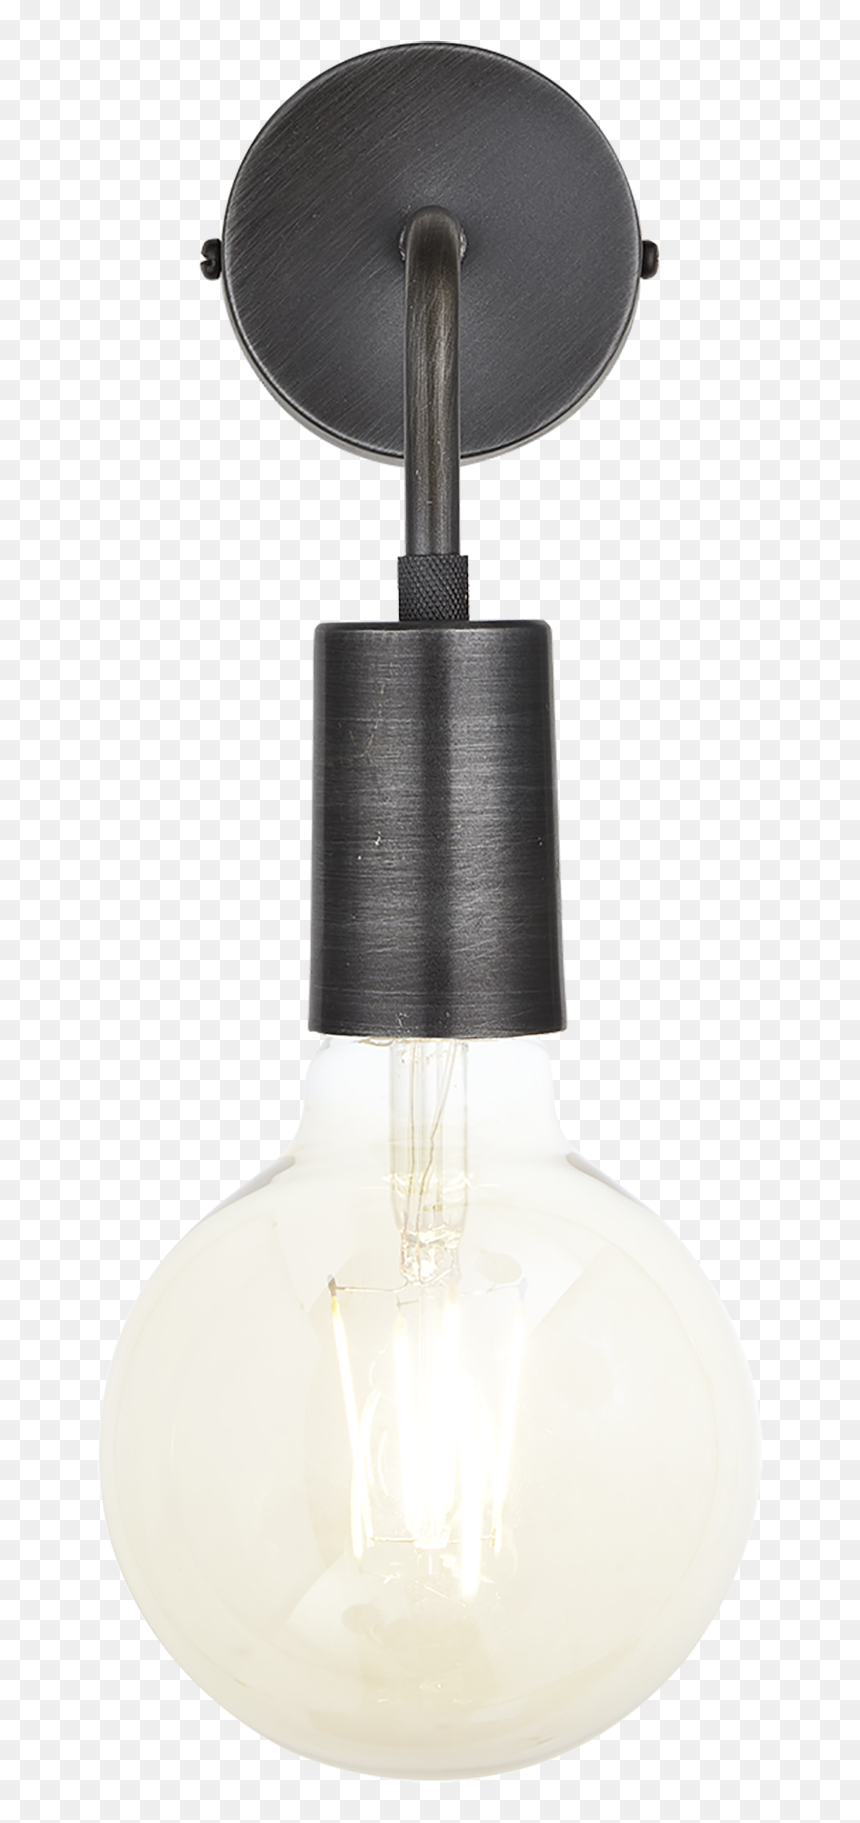 Industville Png - Industville Sleek Edison Wall Light, HD Png Download - vhv